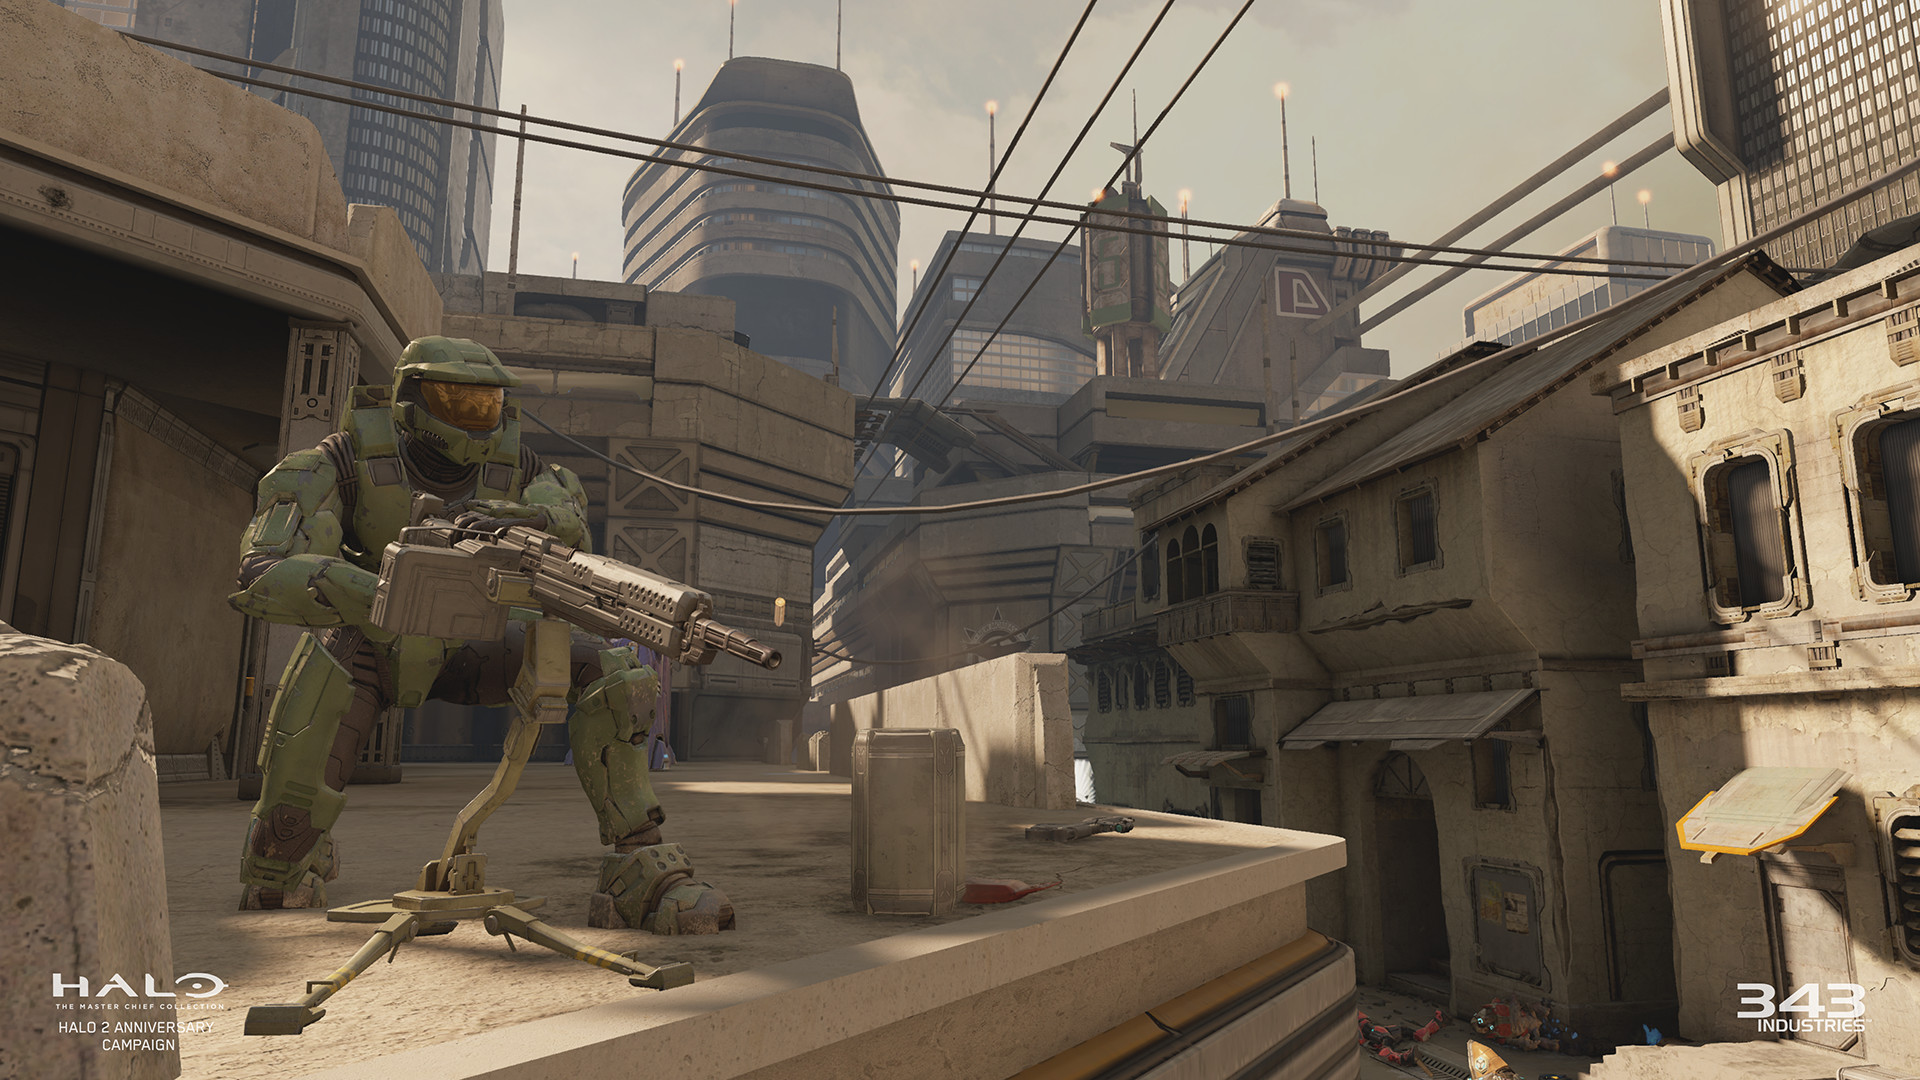 Halo: The Master Chief Collection - screenshot 4